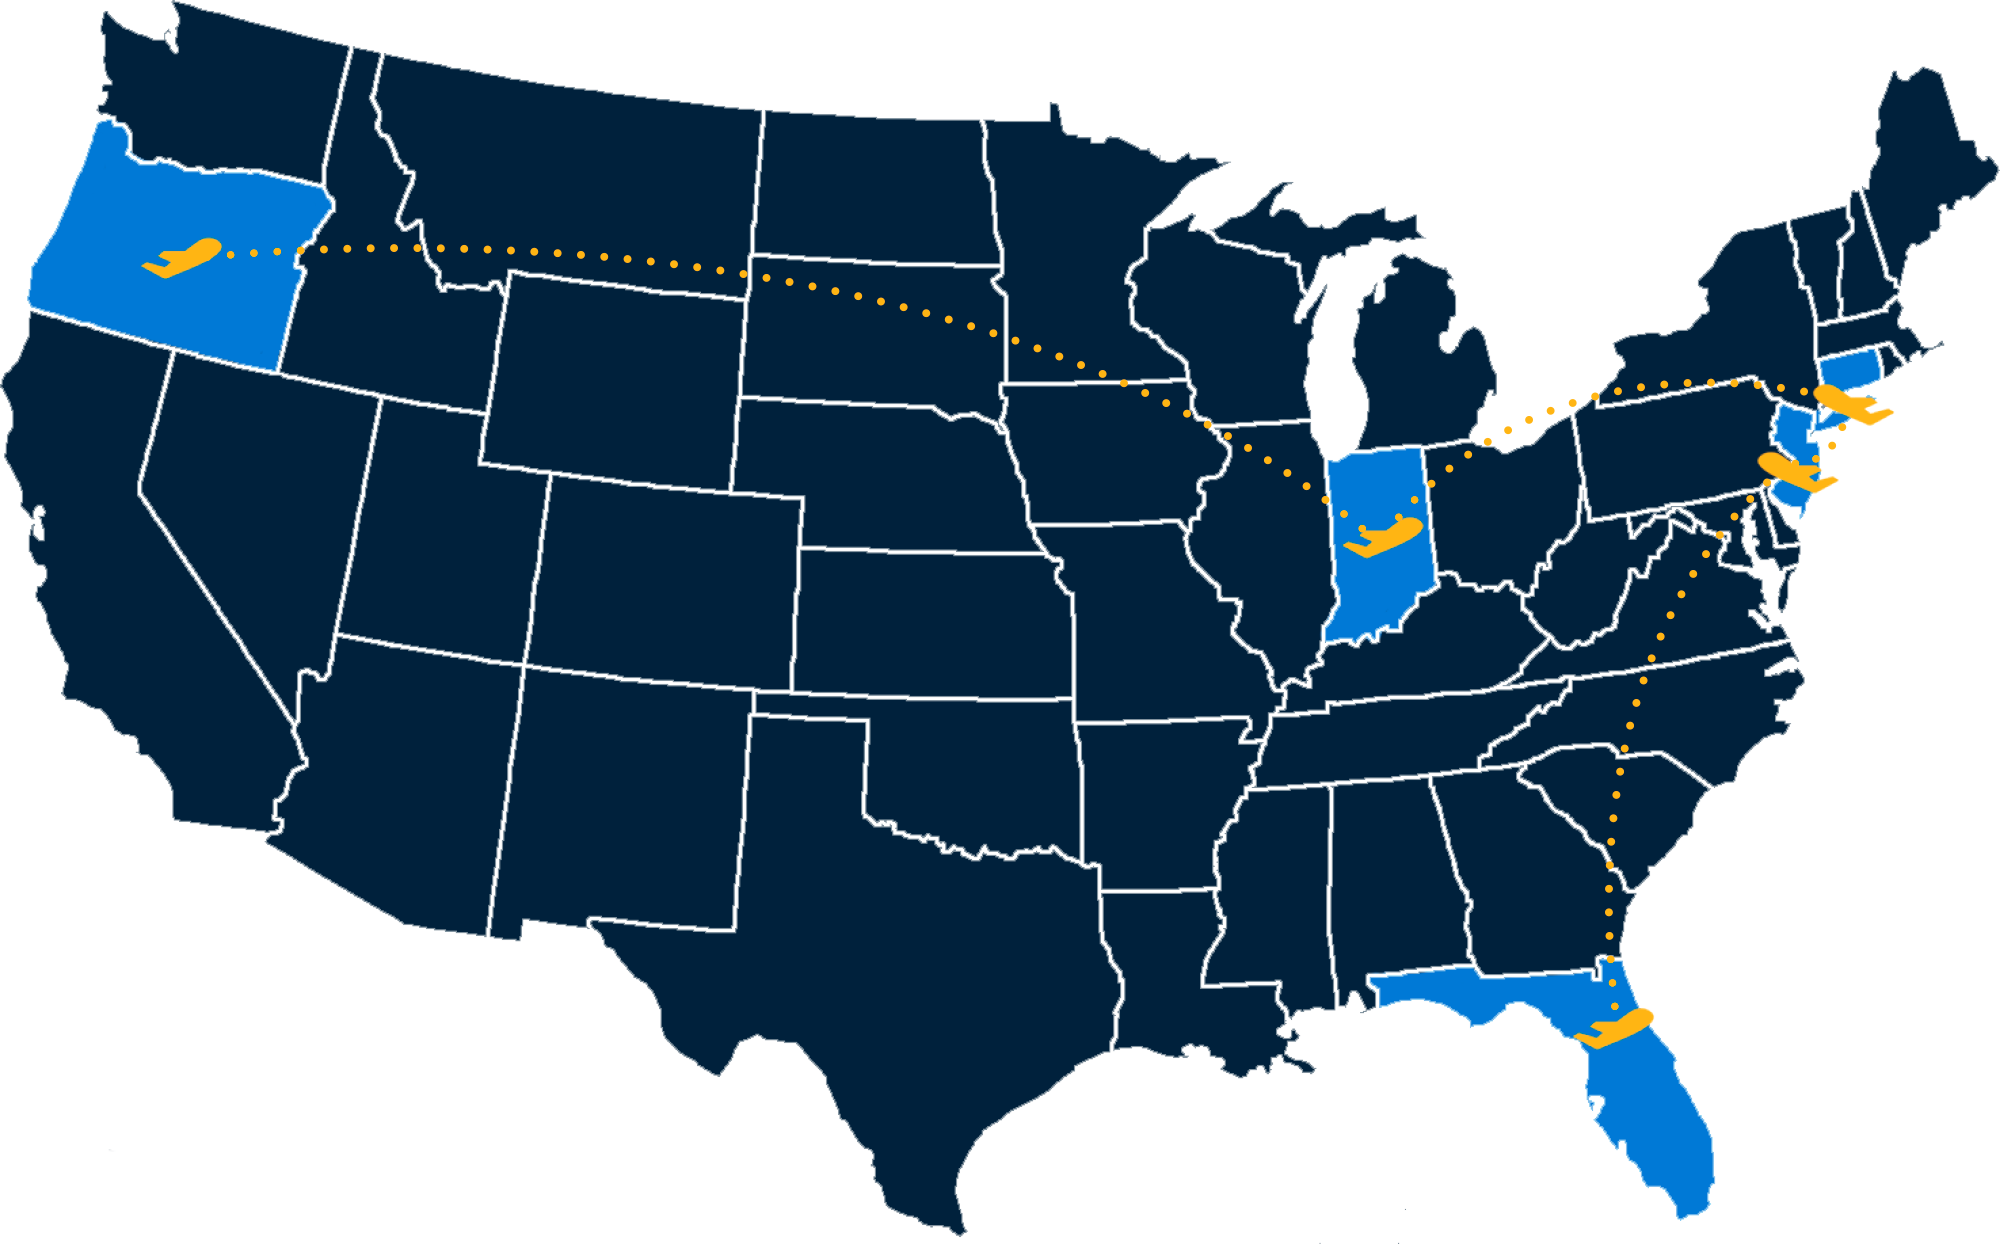 Map with airplane icons in Oregon, Floriday, Connecticut, New York, New Jersey, Indiana showing flight routes